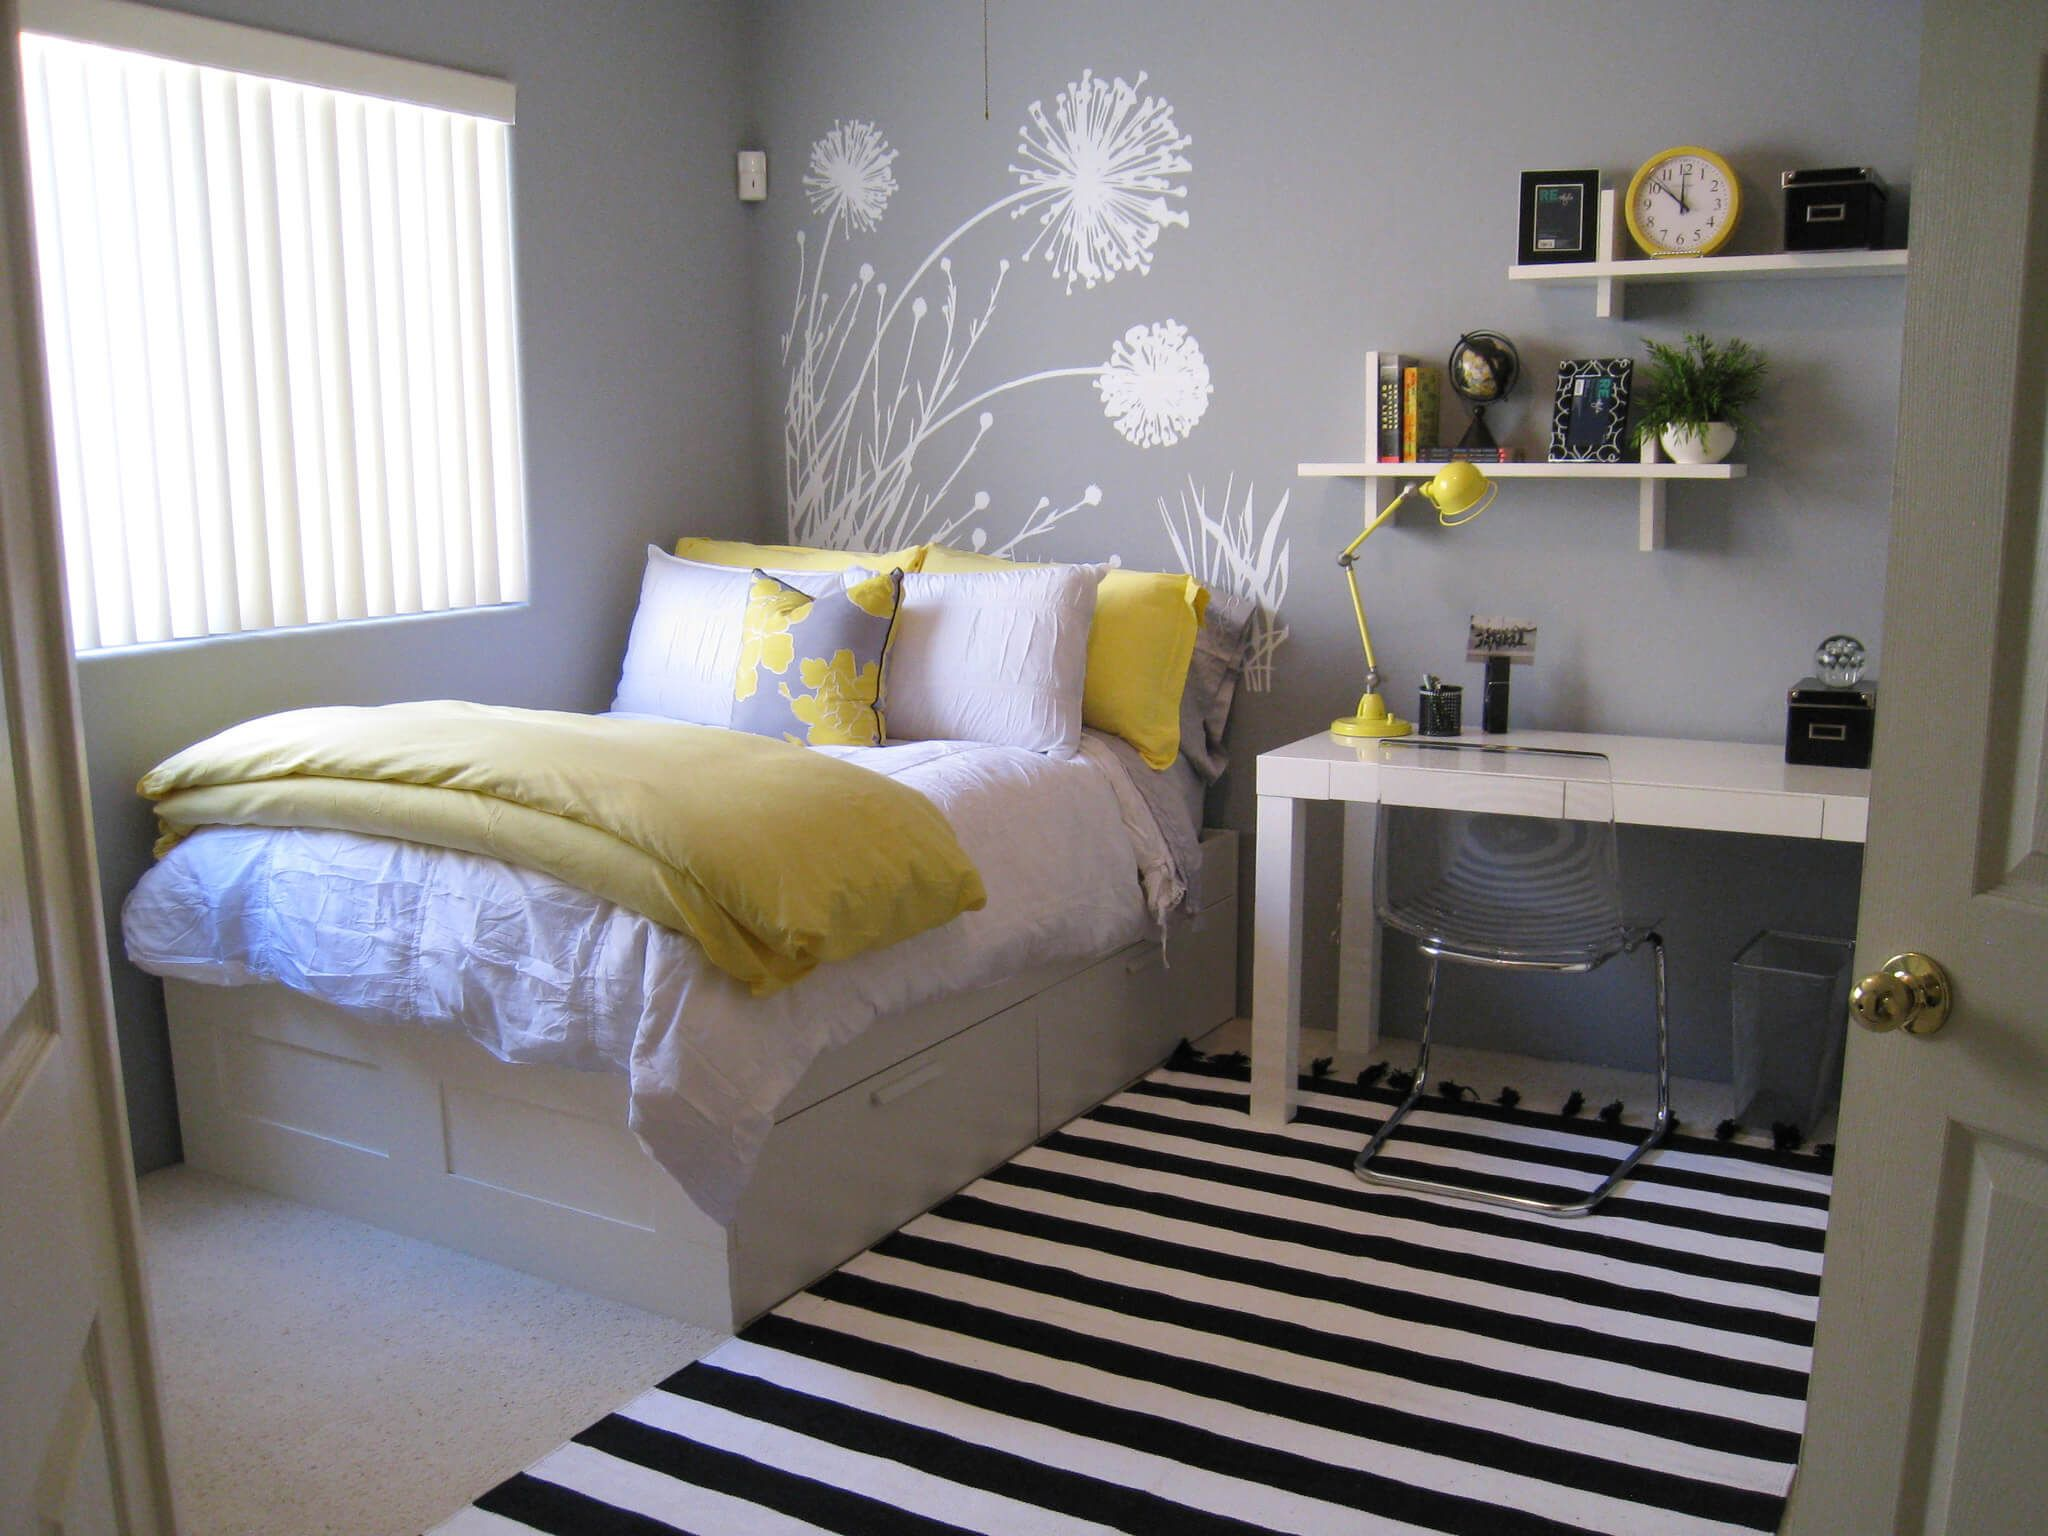 20 Bedroom Color Ideas to Make Your Room Awesome – Houseminds